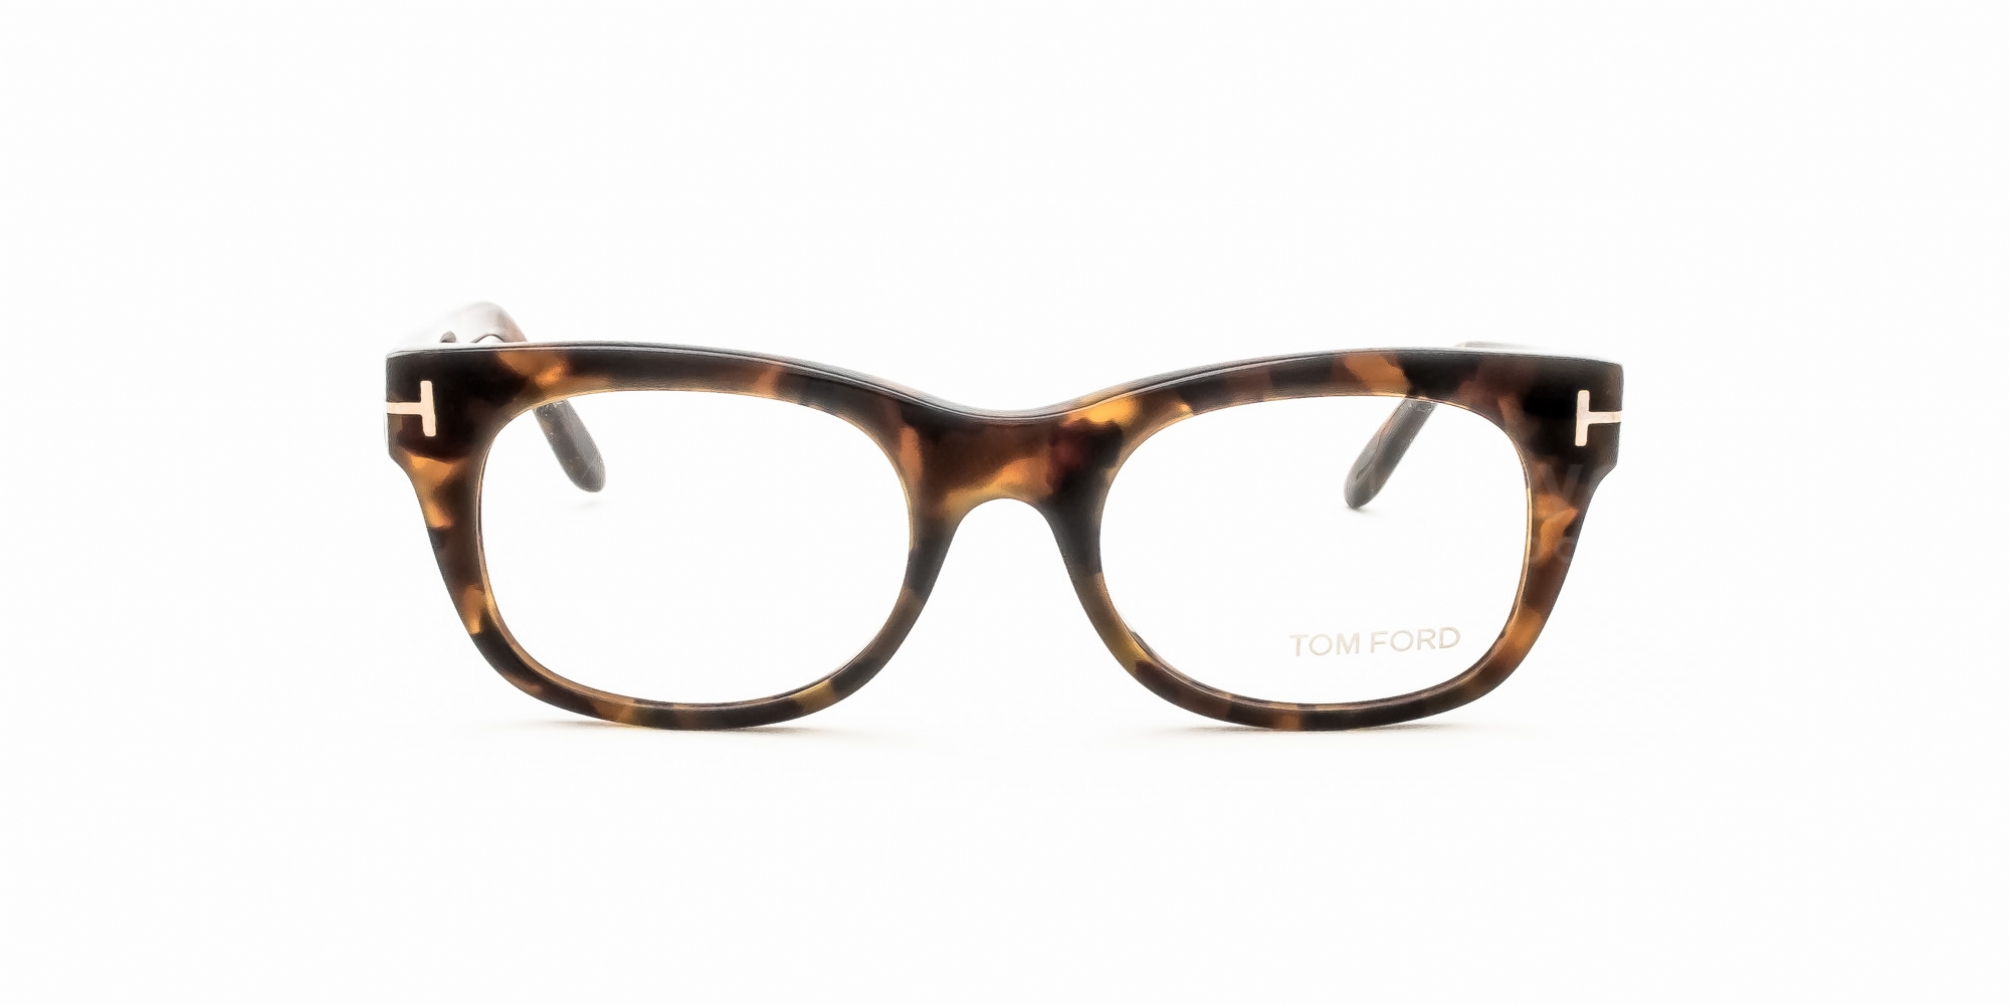 8c34a31e9a Tom Ford 5231 Eyeglasses